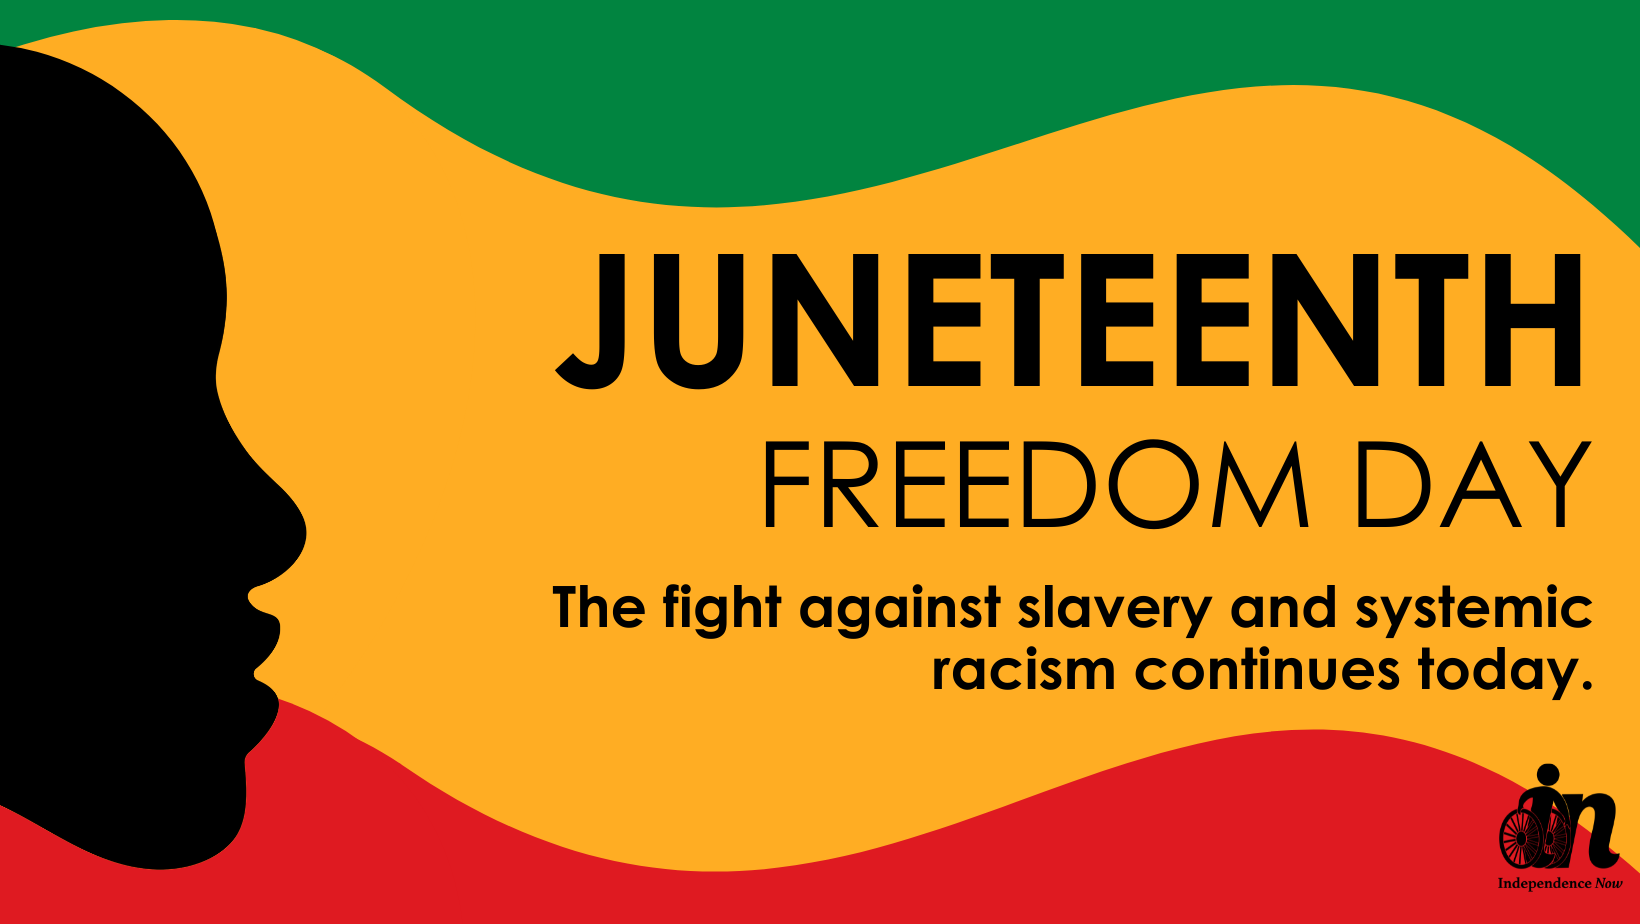 """red, gree, yellow, and black graphic that says """"Juneteenth. Freedom Day. The fight against slavery and systemic racism continues today."""""""